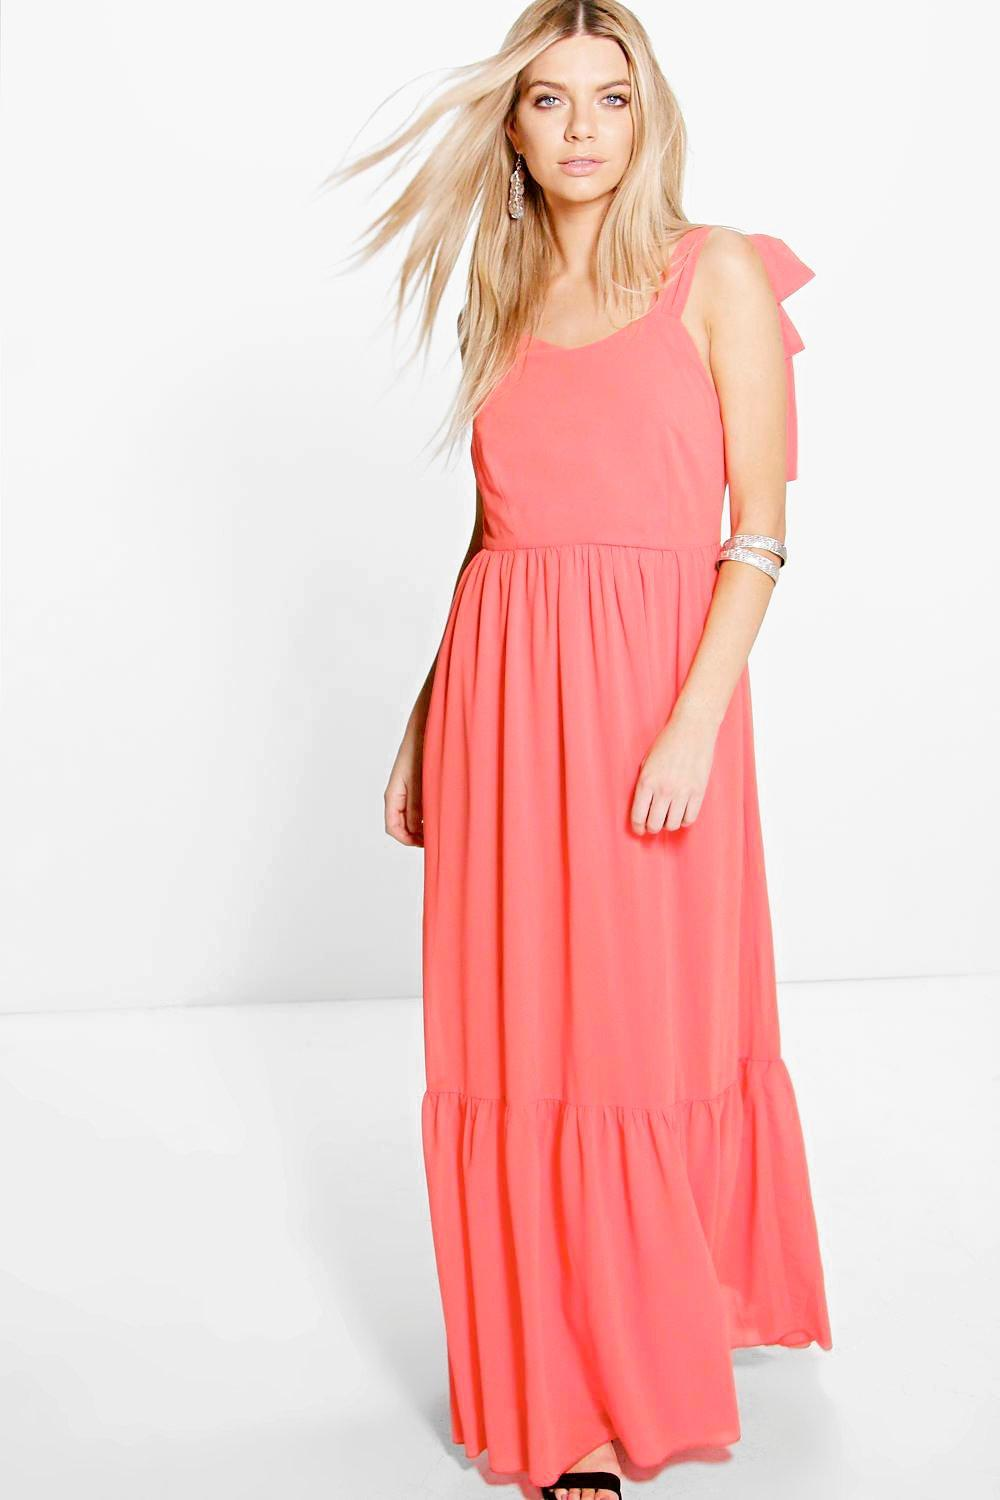 Sarah Wide Tie Straps Ruffle Hem Maxi Dress